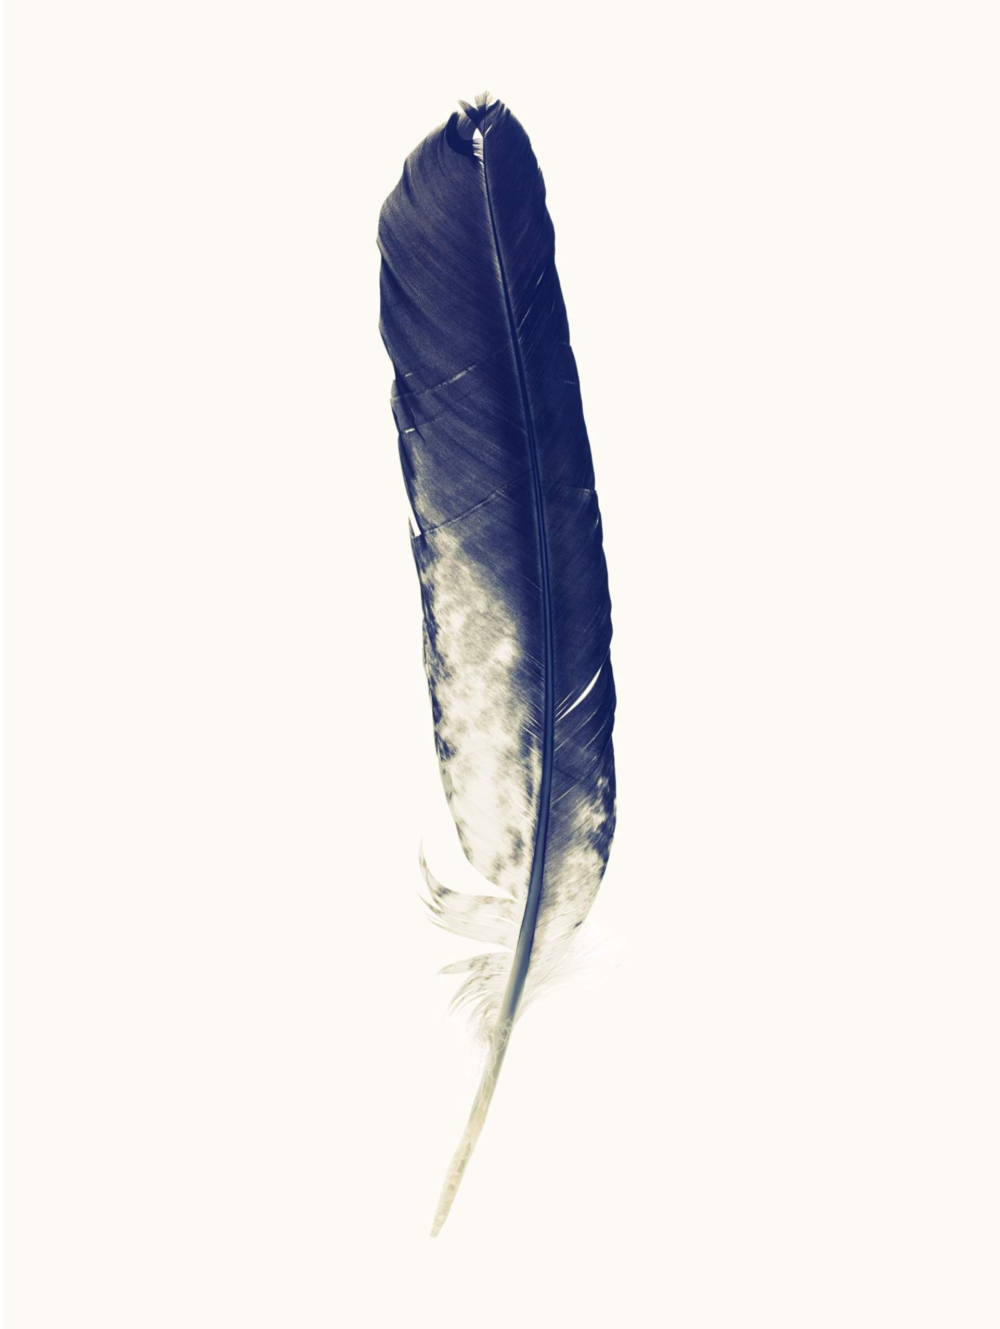 "Lyle Owerko, ""Eagle Hunter Feather 5"" 2015. Edition of 9 + 2 AP's. Giclee on textured fine art paper. 32 x 44 in."